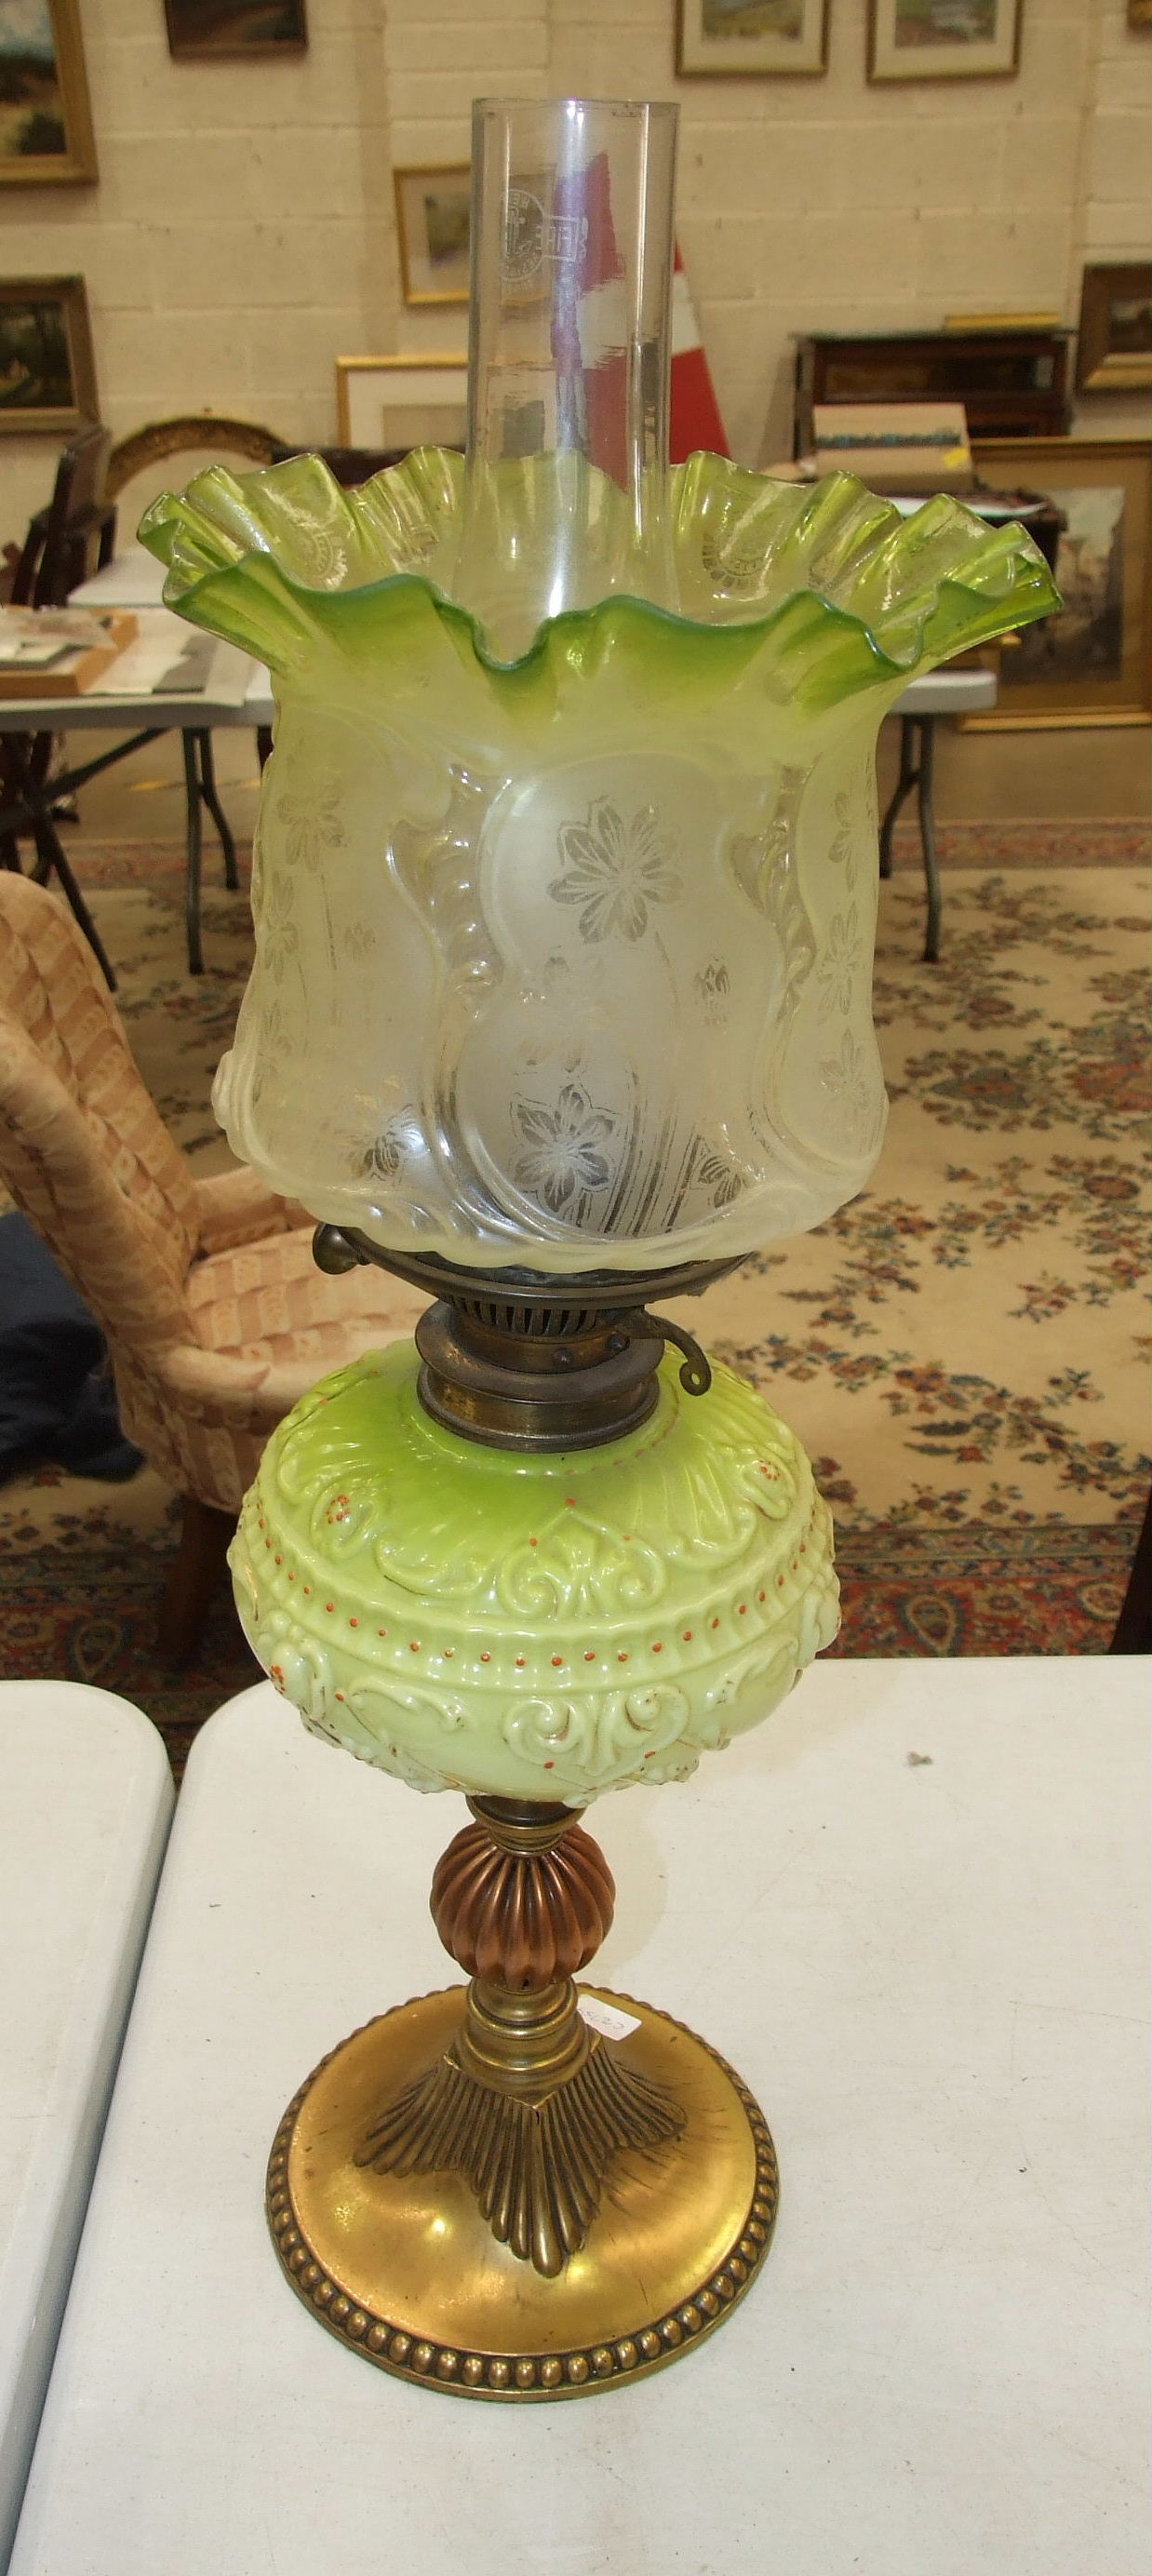 A Victorian brass and copper oil lamp with moulded pale green glass reservoir and etched glass - Image 2 of 14